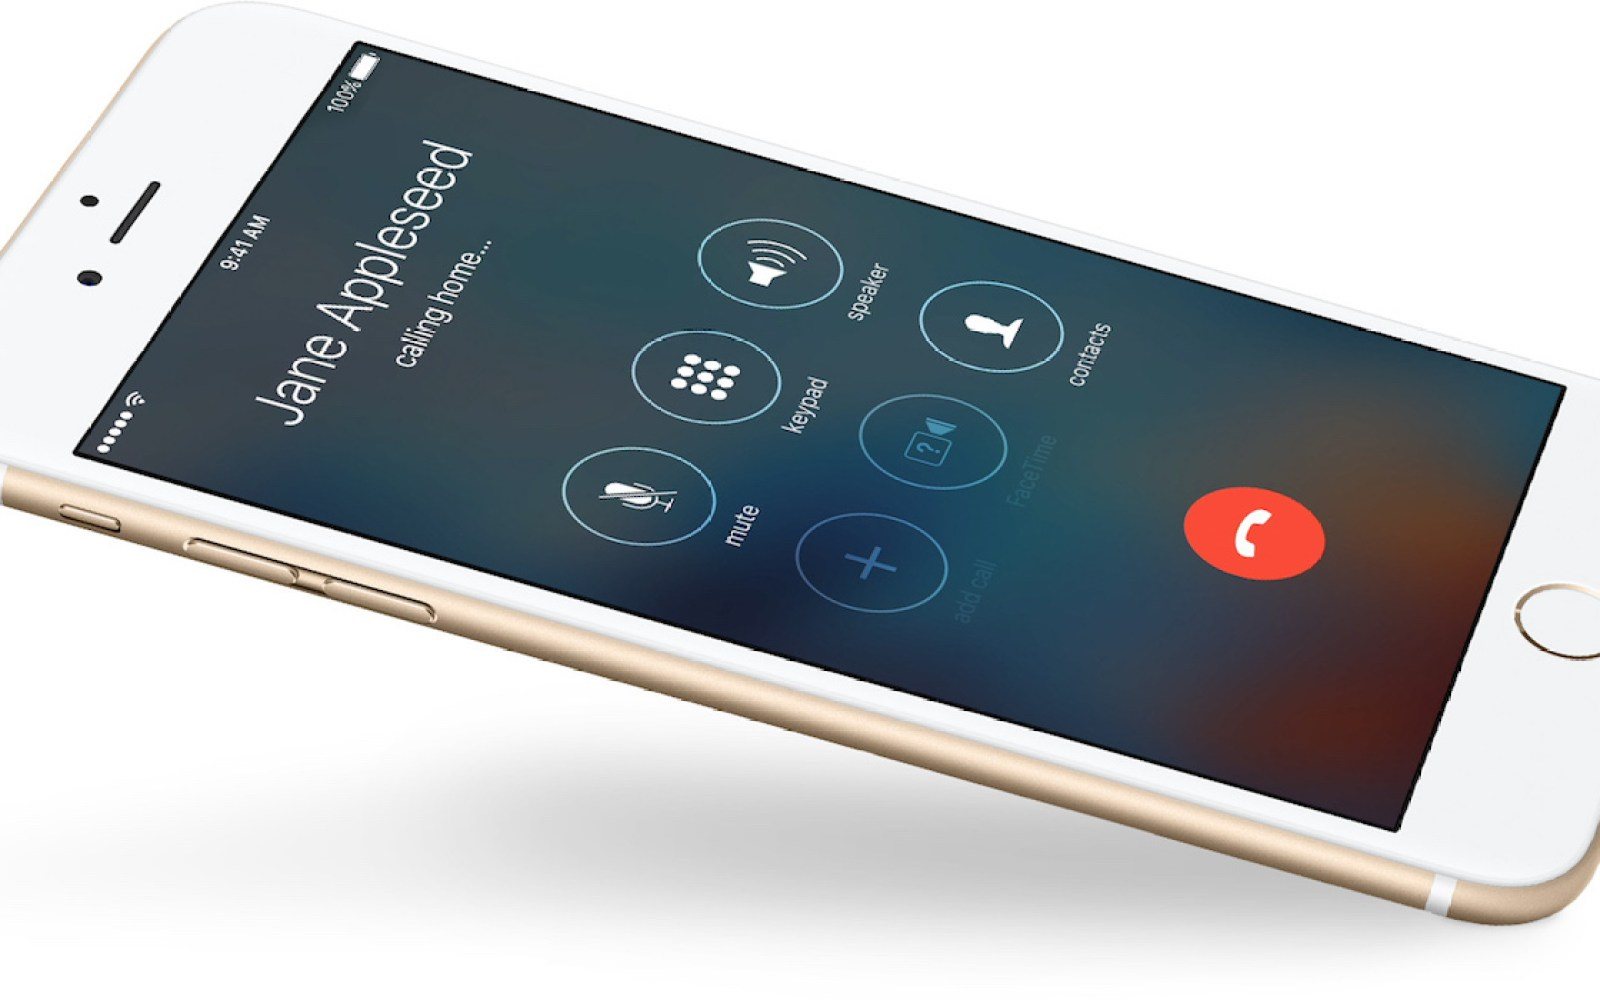 iOS 9.2 beta 2 brings AT&T Wi-Fi calling to the Mac and other devices